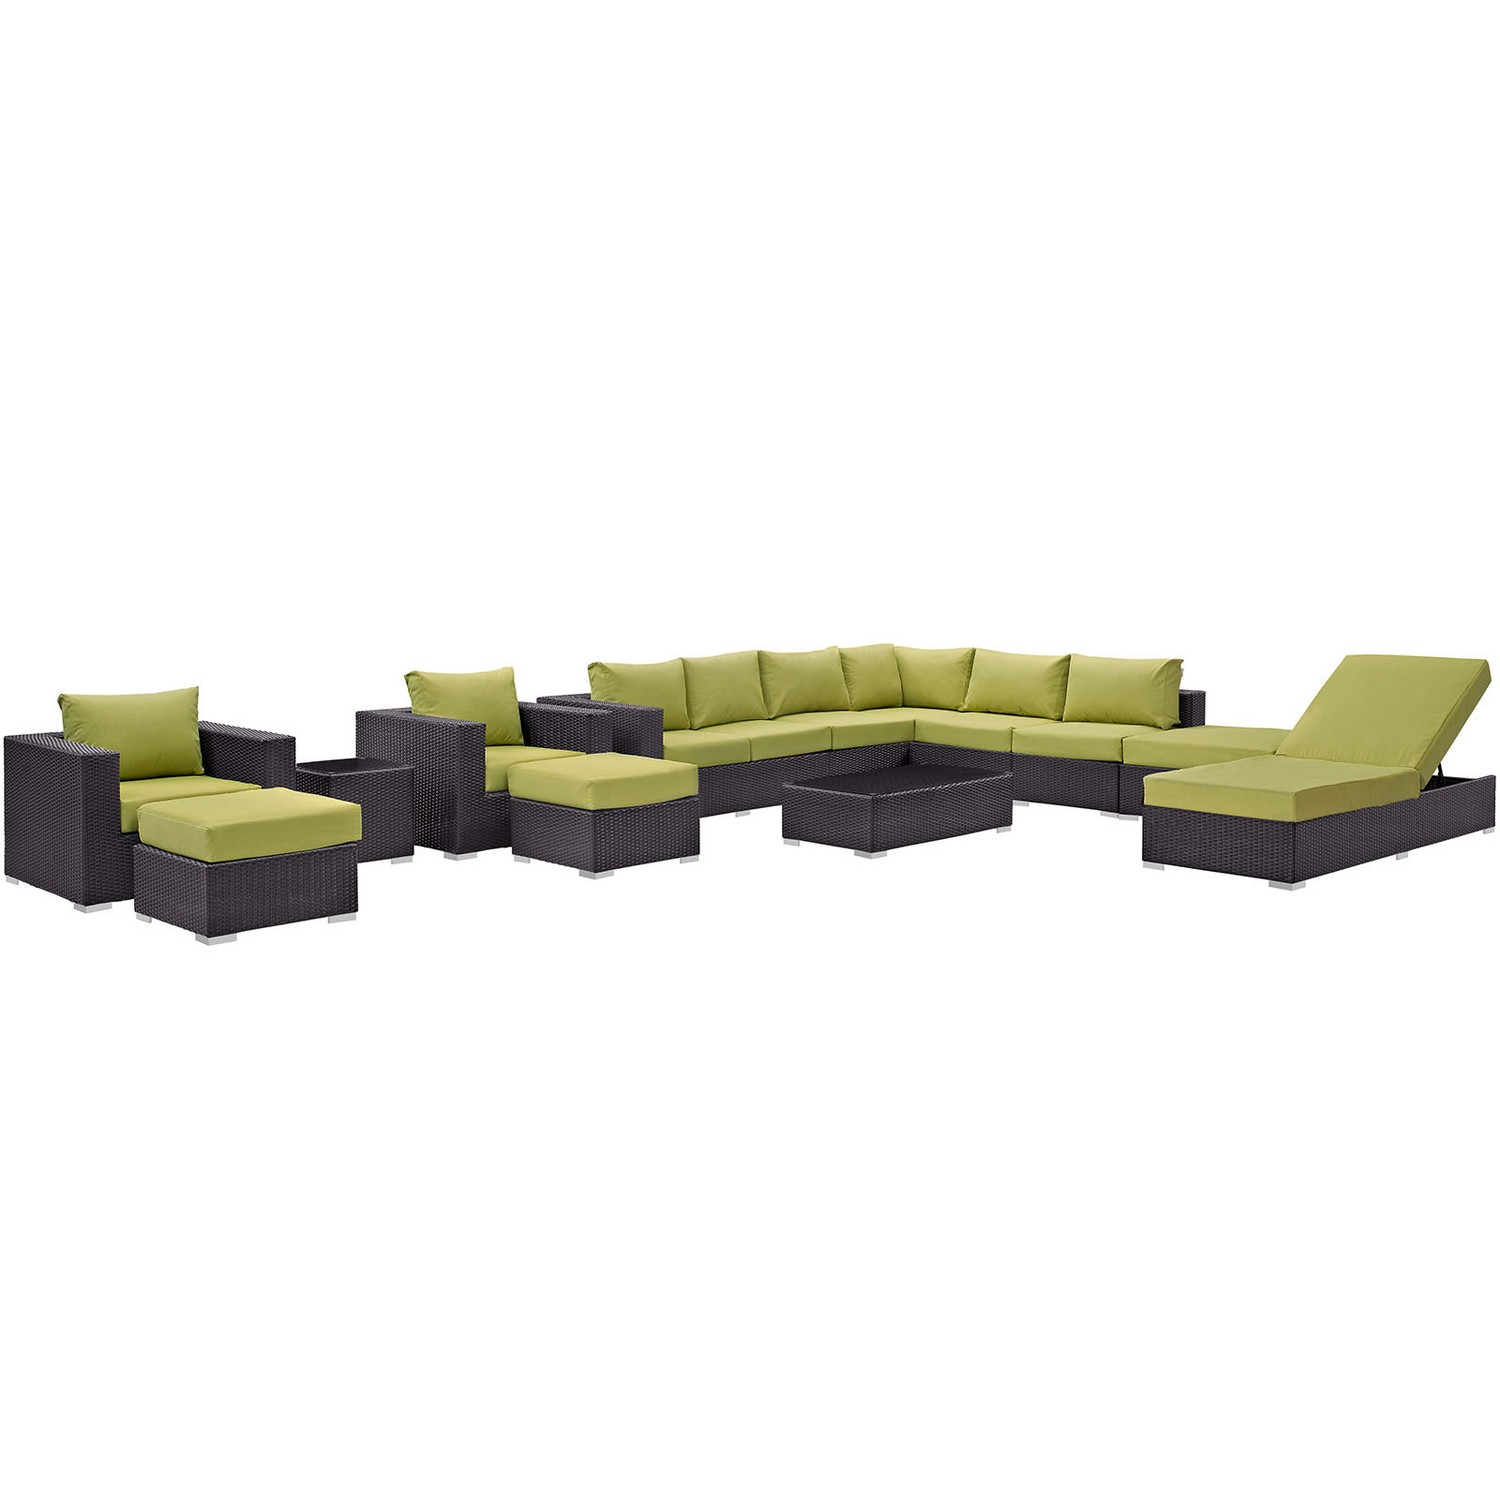 Modway Convene 12 Piece Outdoor Patio Sectional Set - Espresso Peridot